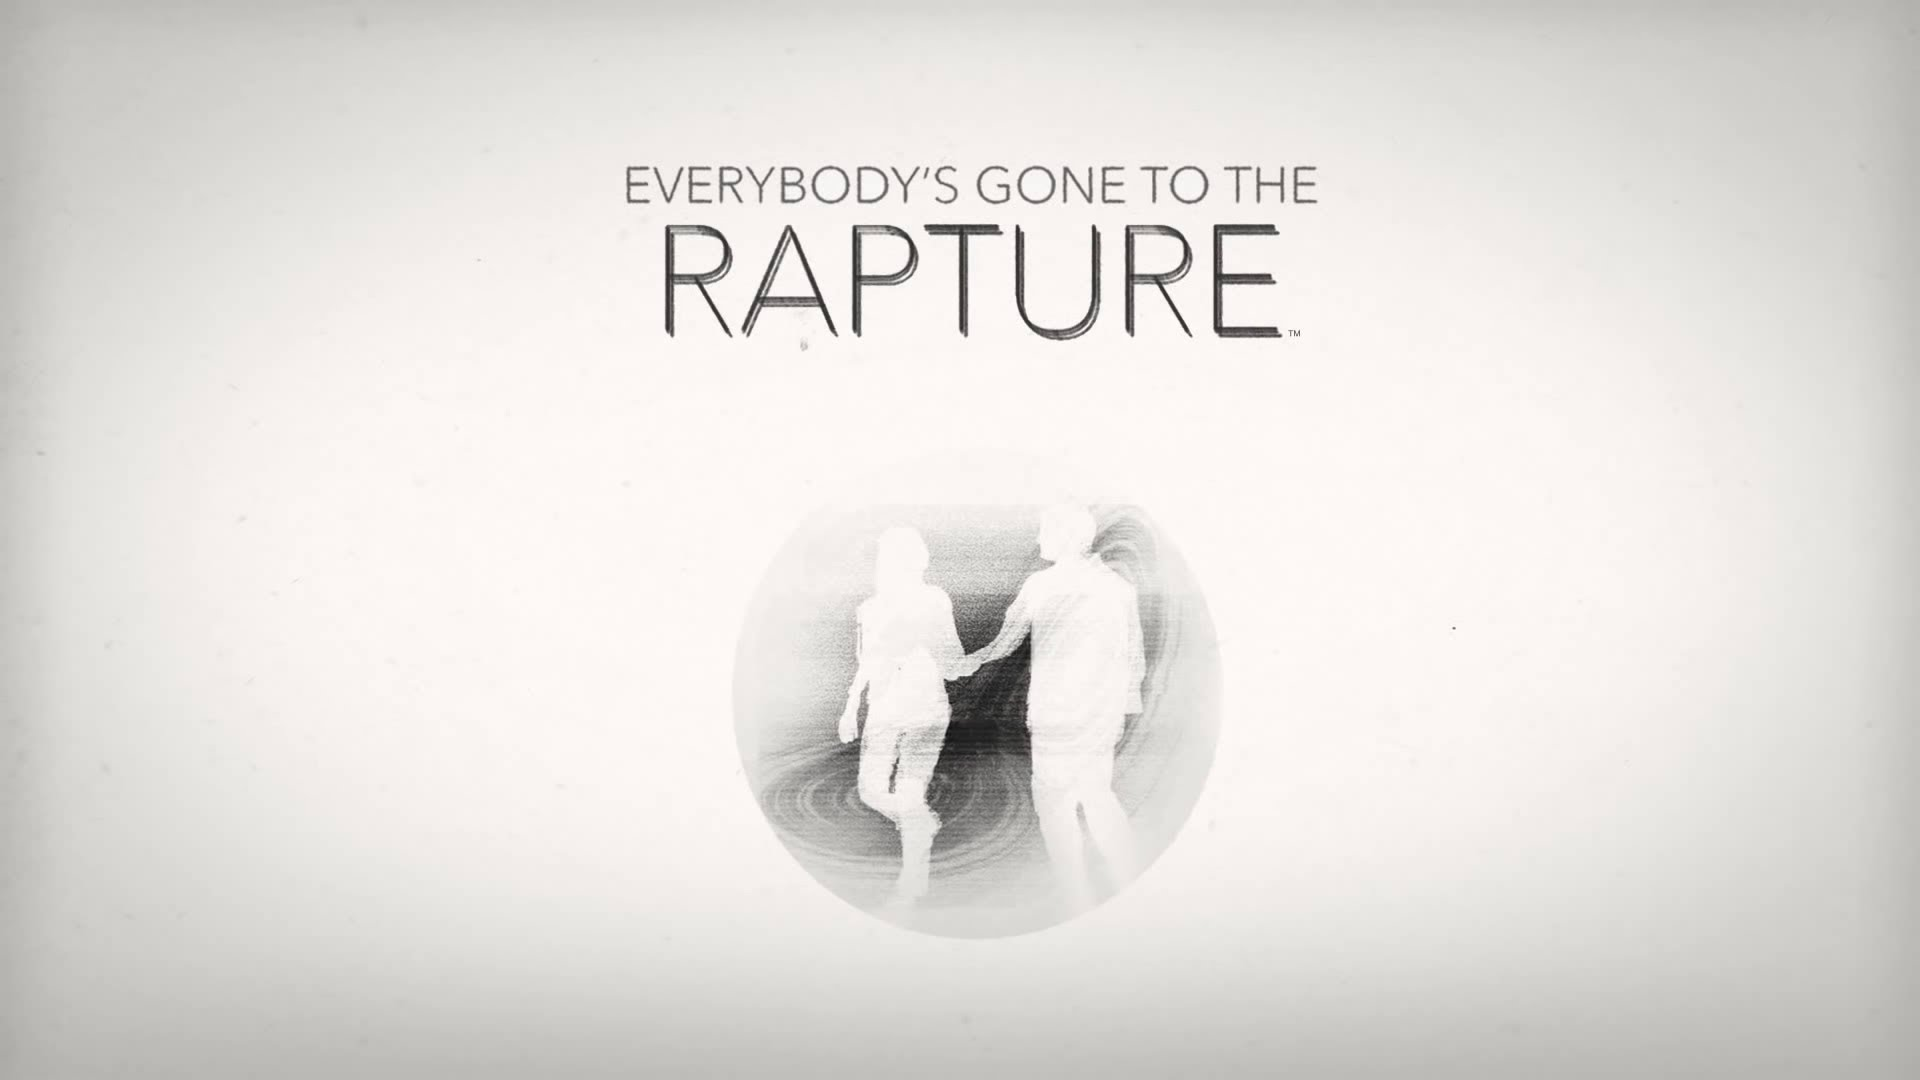 Everybody's Gone to the Rapture Full hd wallpapers